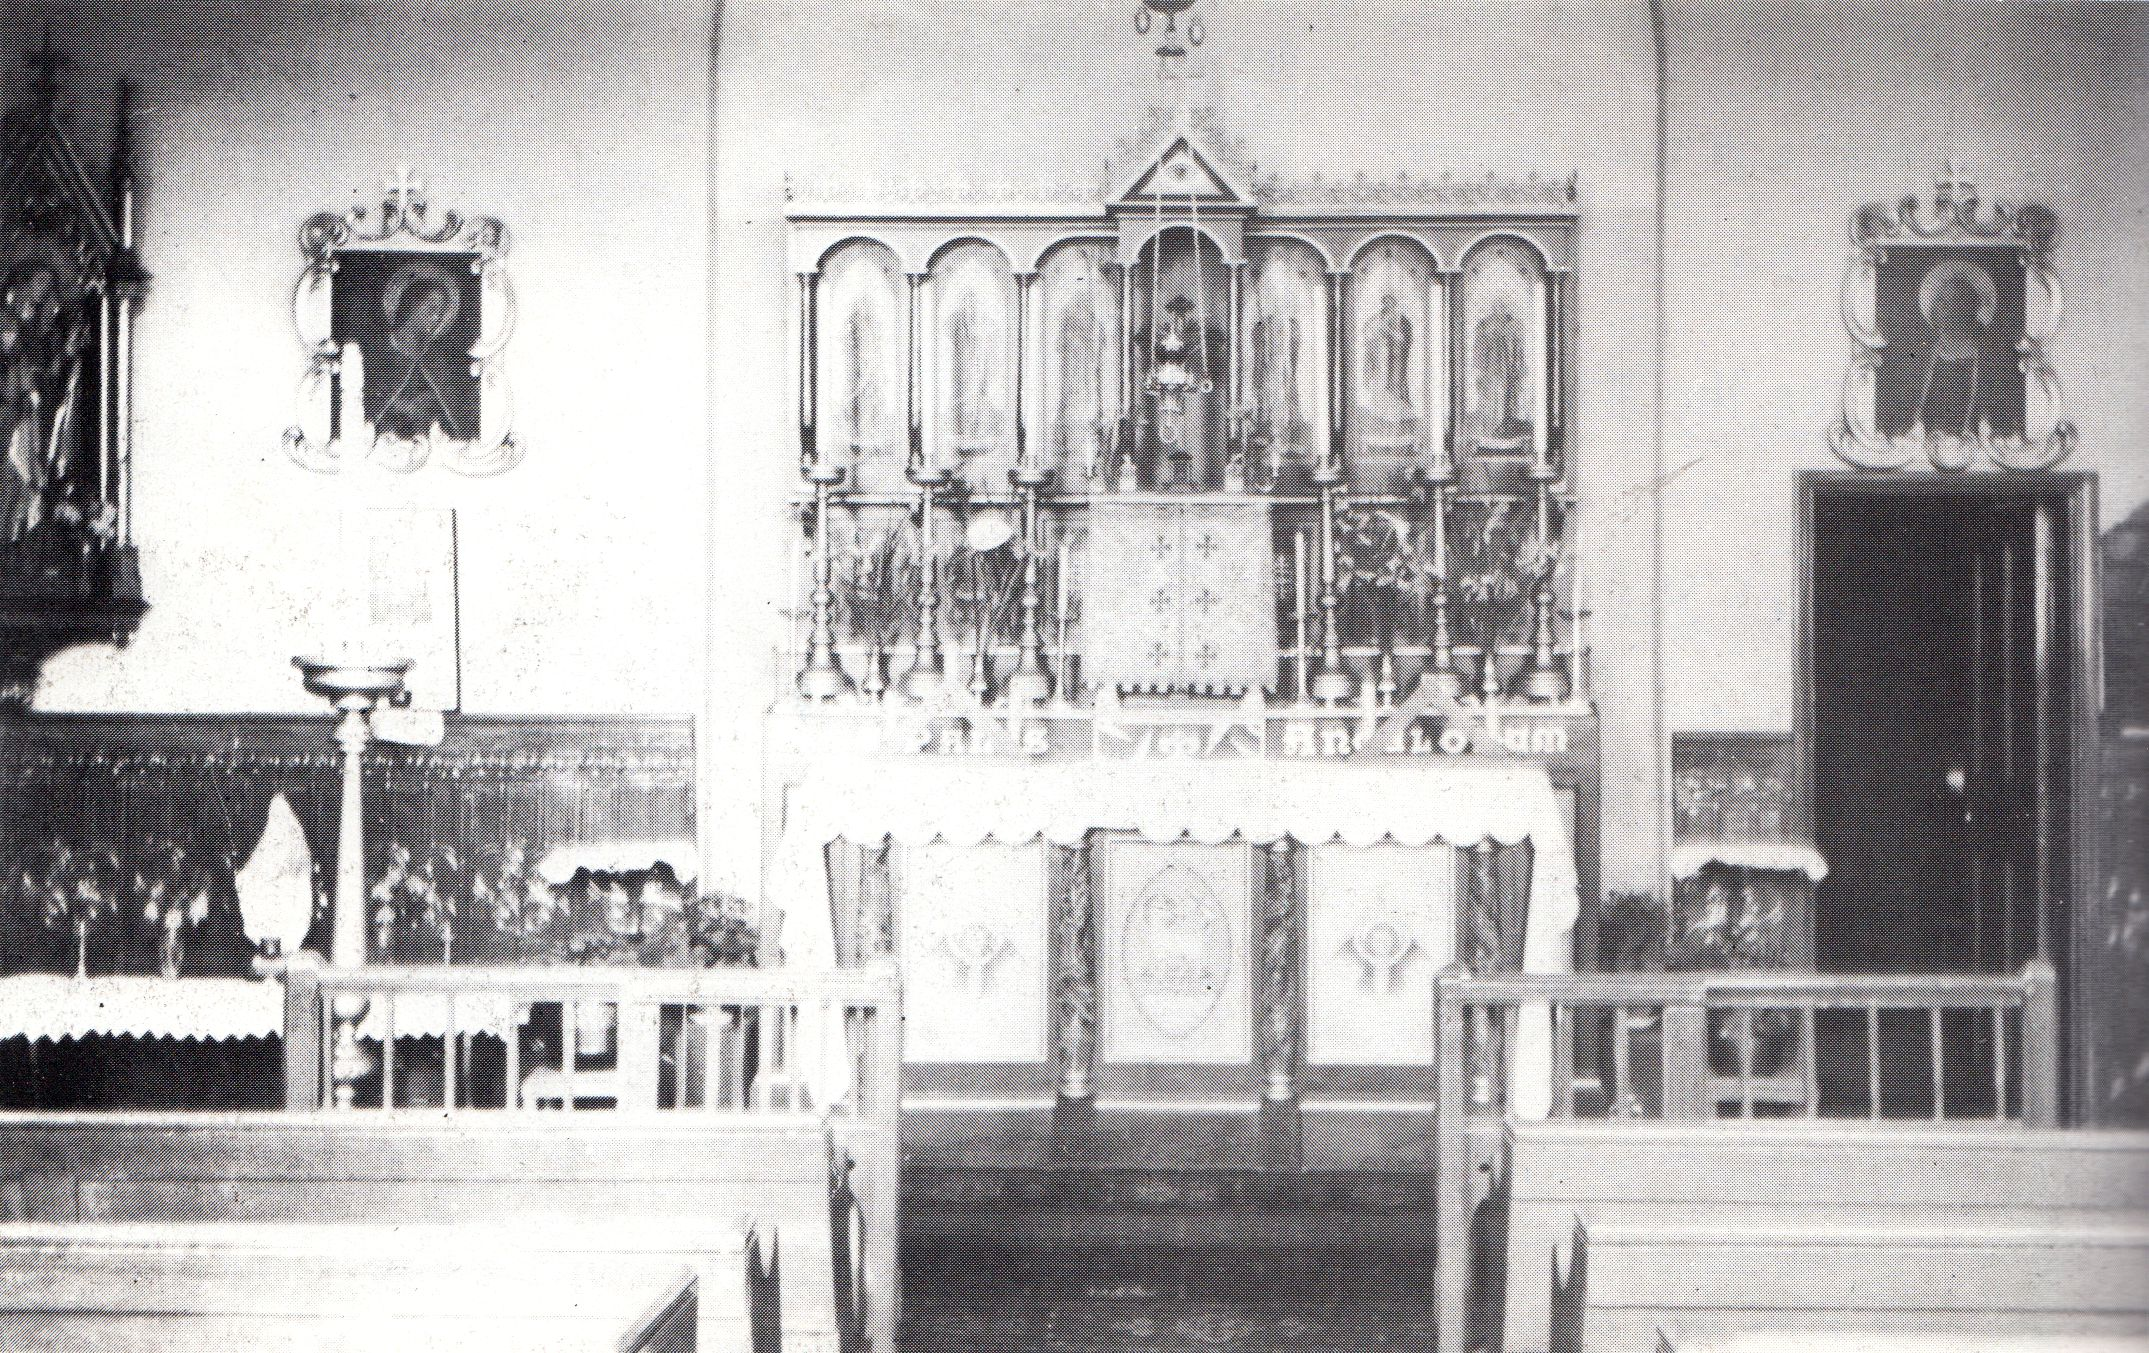 fpoh28_rc_church_interior_0002.jpg